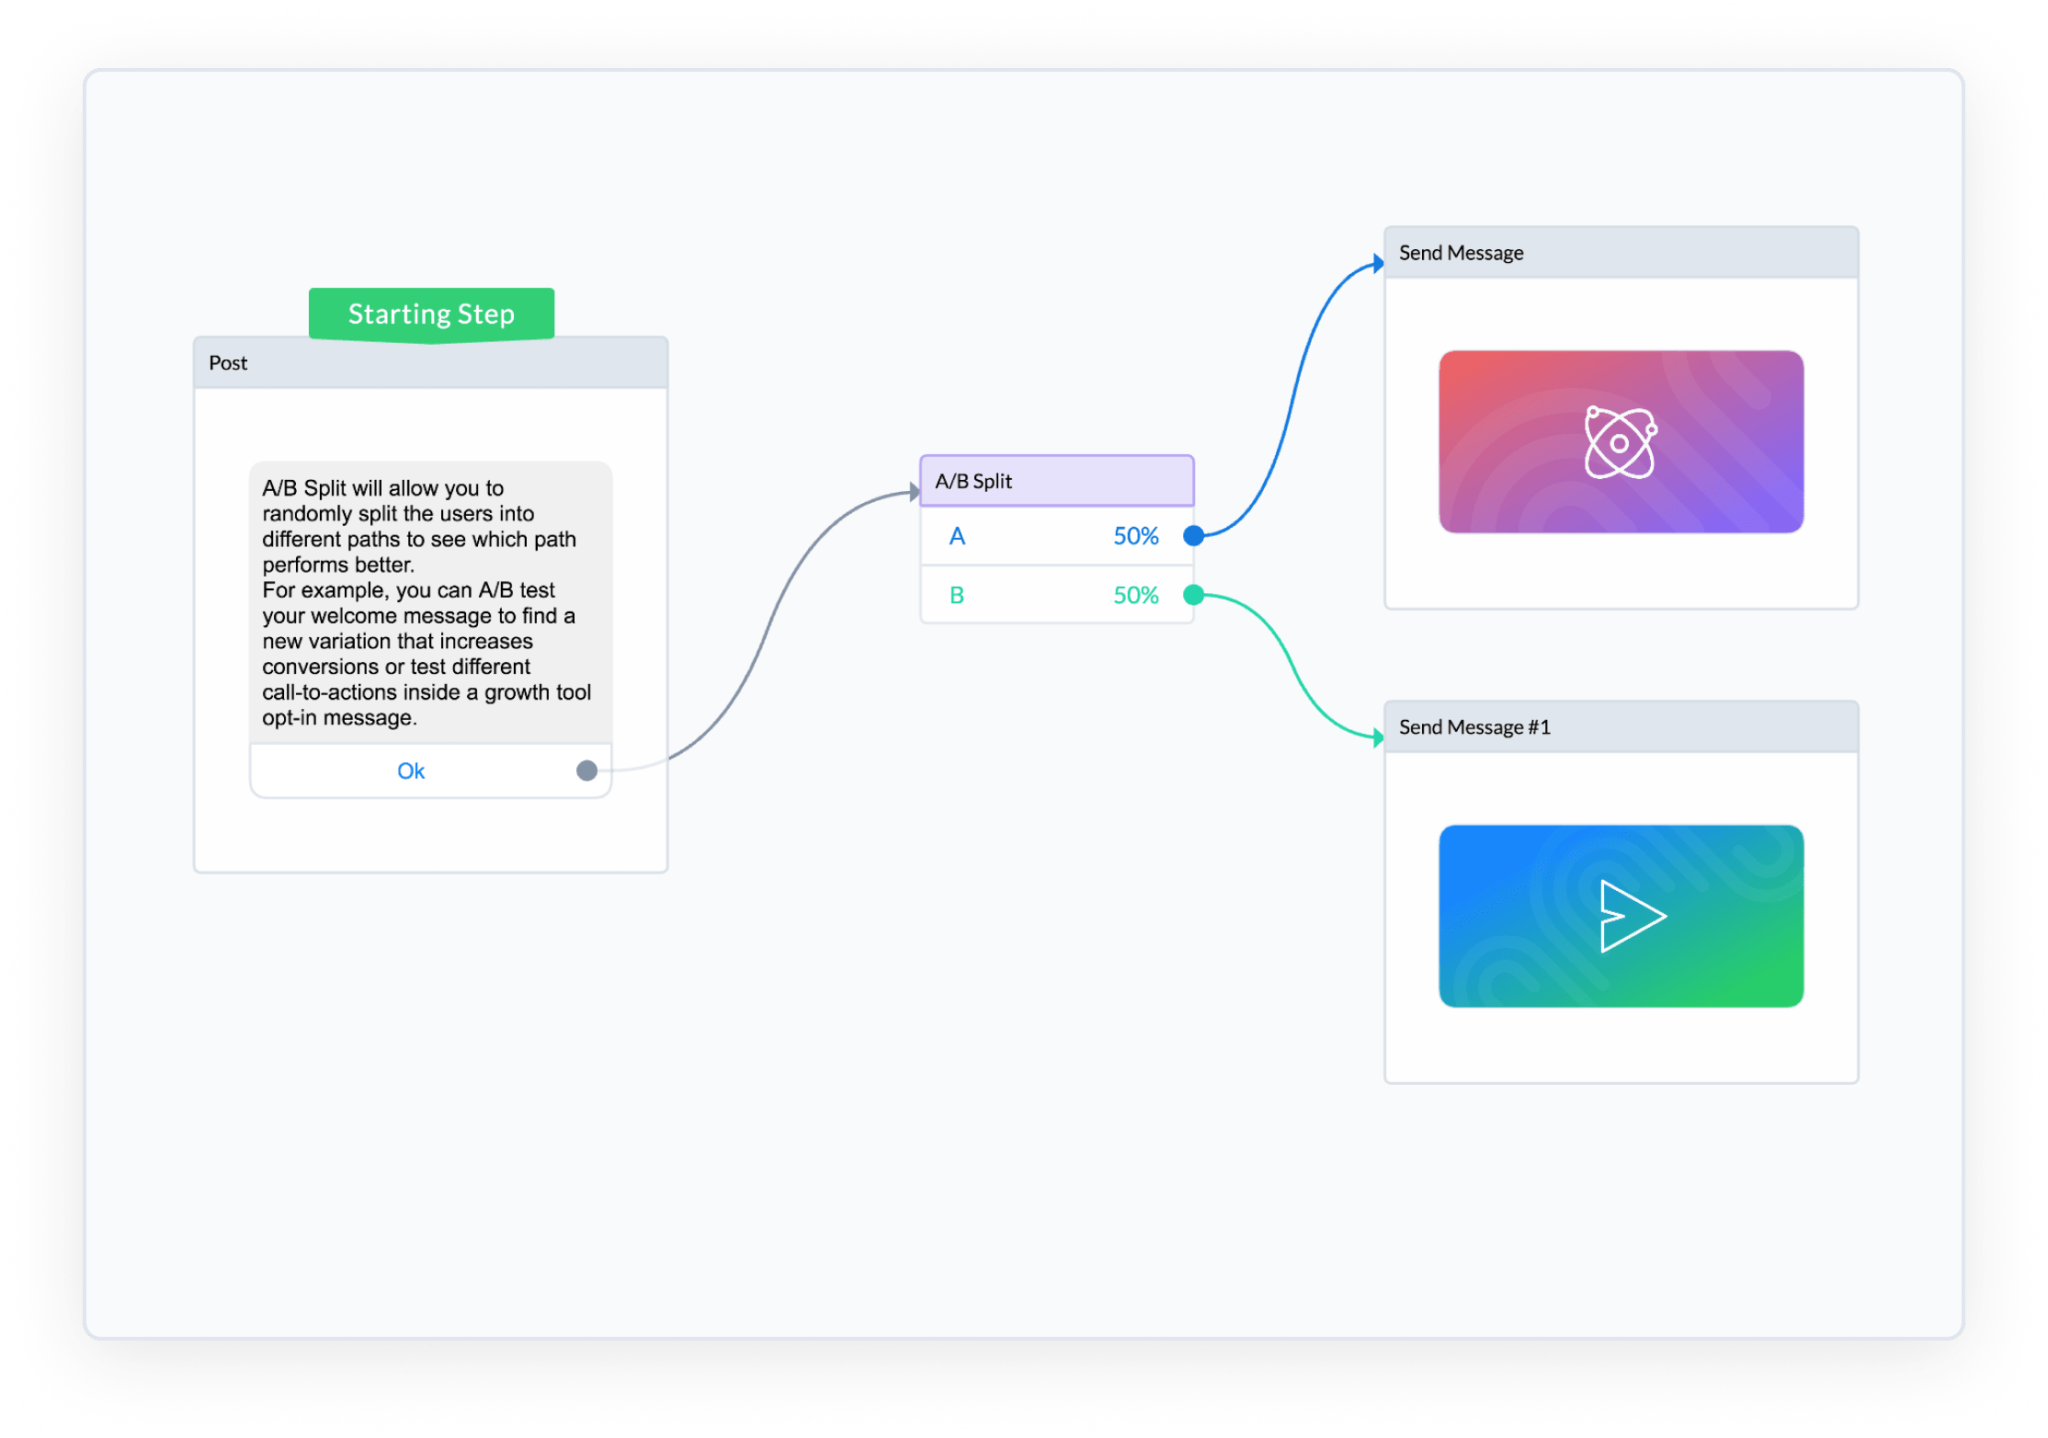 ManyChat Flow Builder A/B Split Step